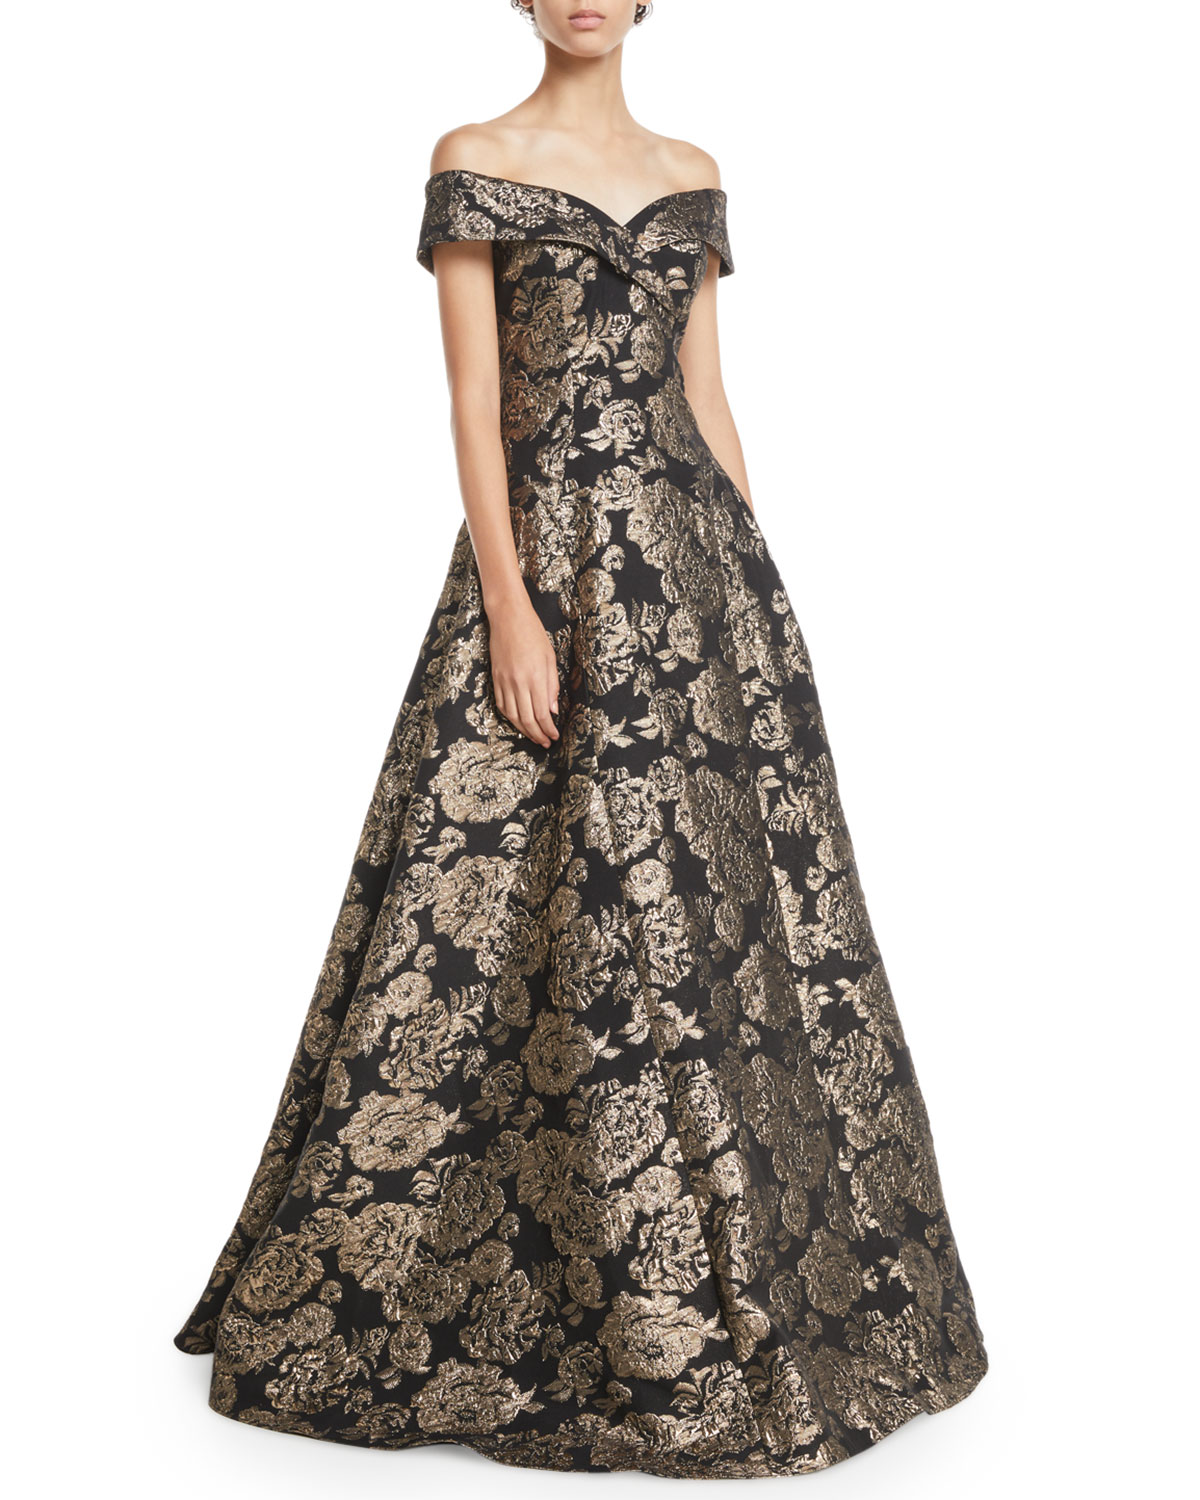 e19bdf8f65d Rickie Freeman for Teri Jon Off-the-Shoulder Floral Jacquard Ball Gown